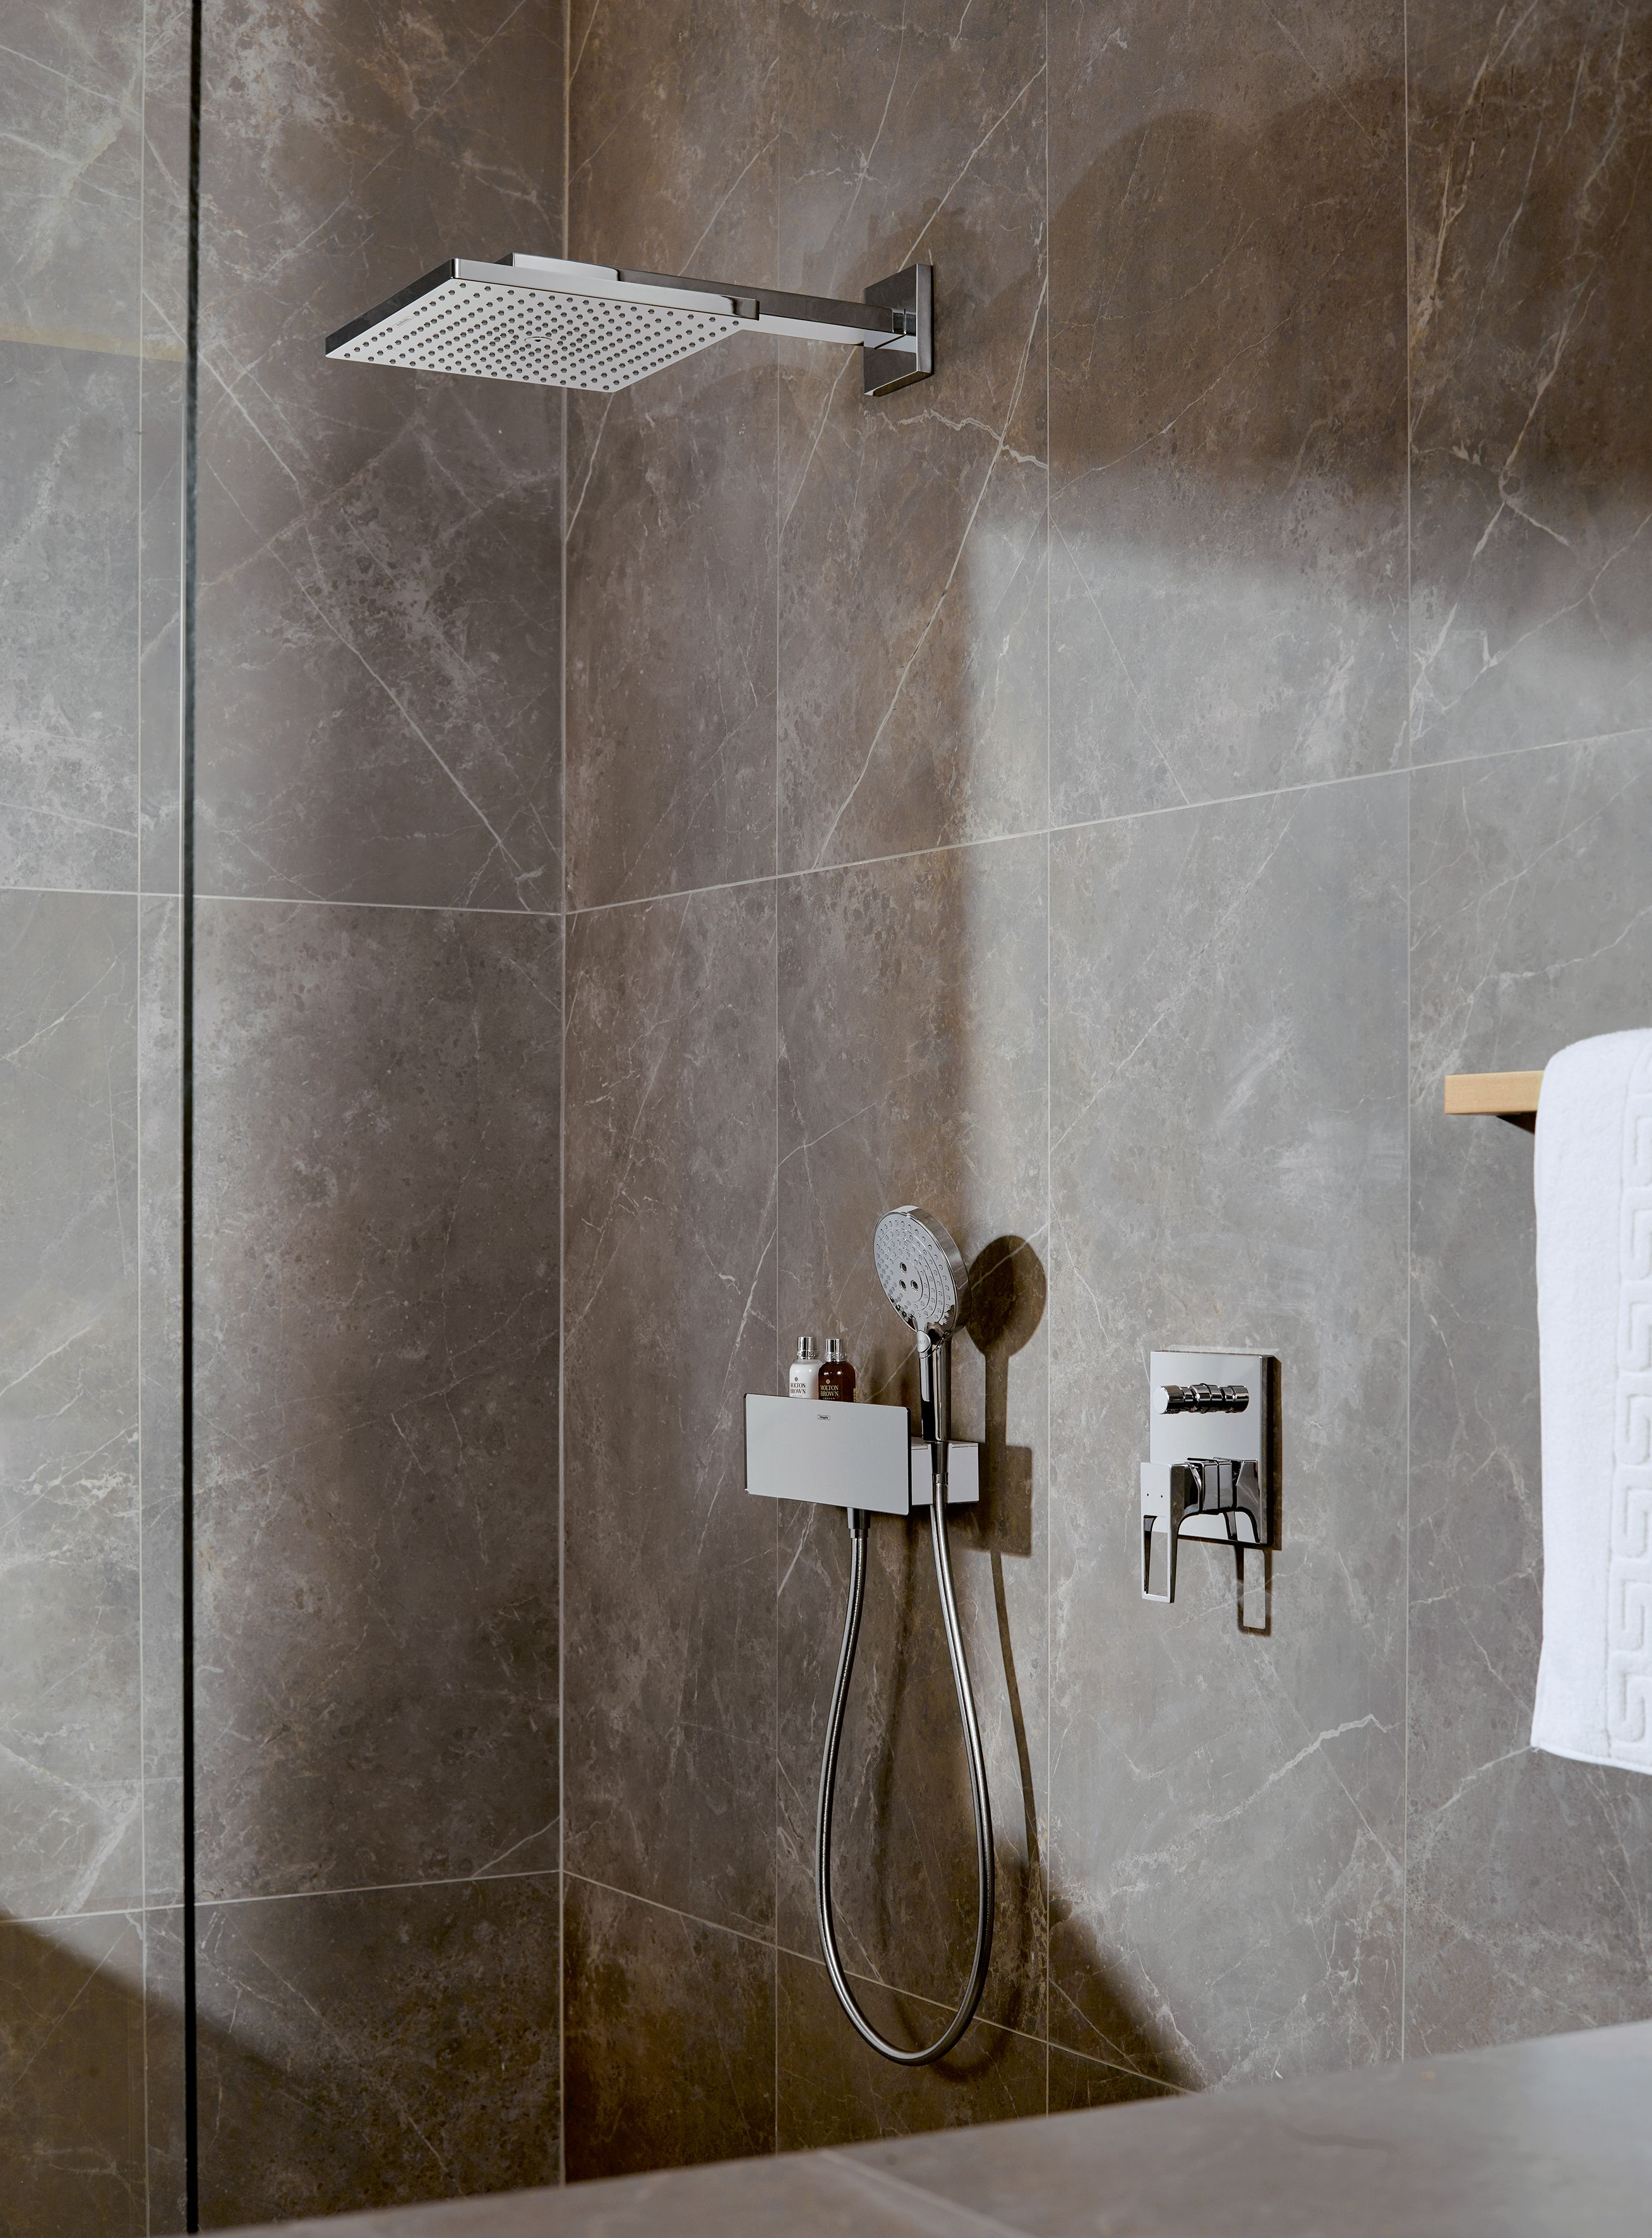 The Hansgrohe Raindance Rainfall Overhead shower is